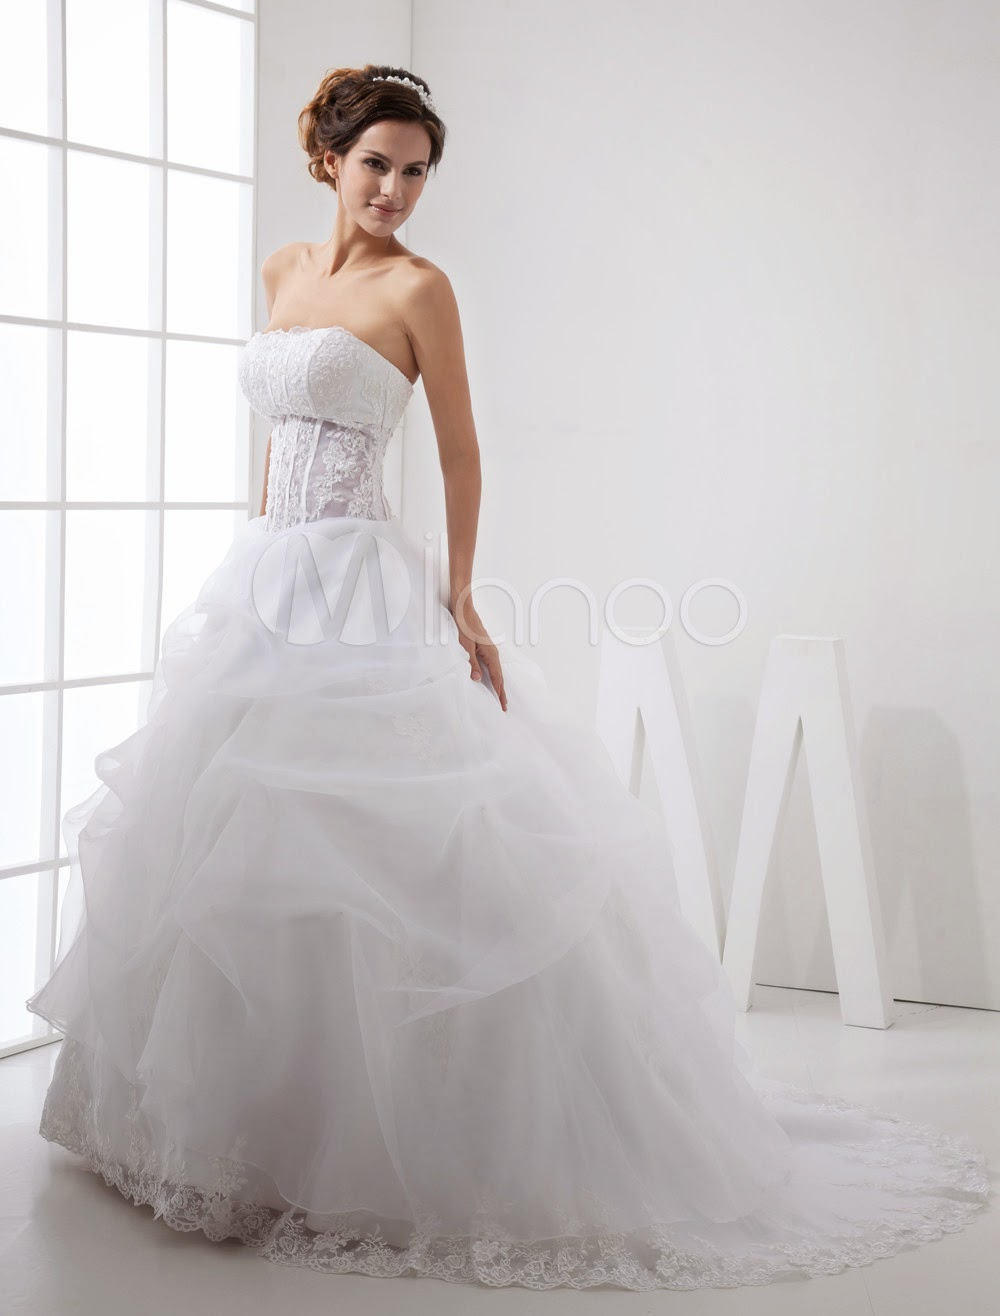 Sash Satin Organdie Wedding Dress